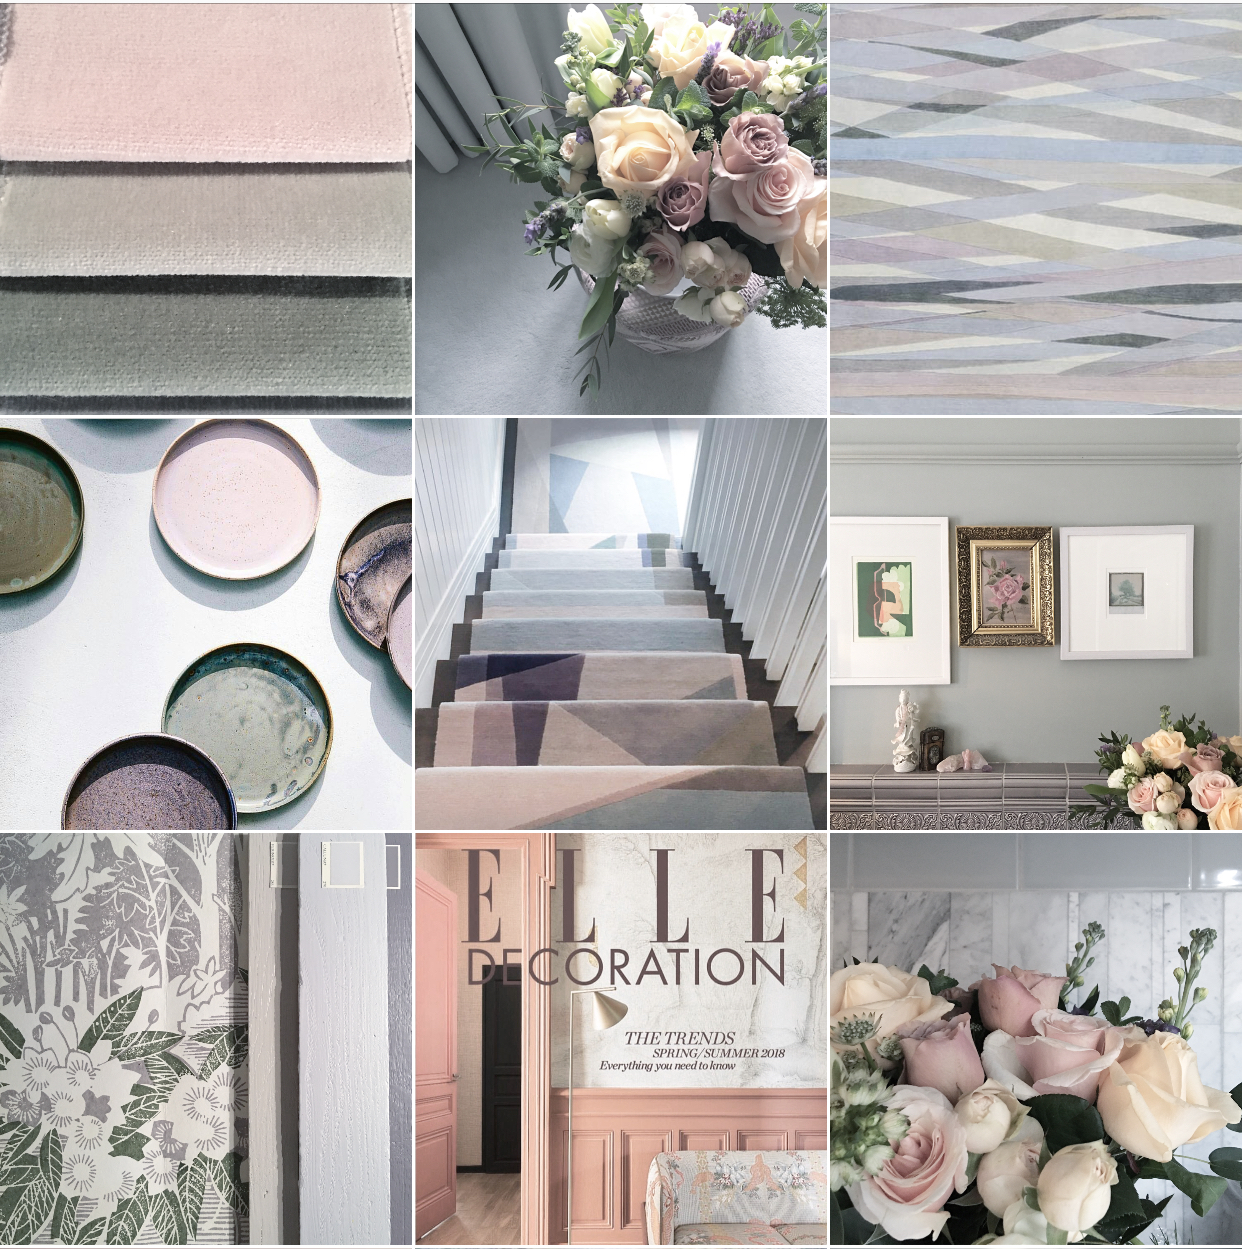 Bye Bye beige'n'white, hello tearose, palest peach, mint and lavender hues. The New Neutrals Insta-colourscape. Follow feed for full captions and credits. All flowers by The Real Flower Company.